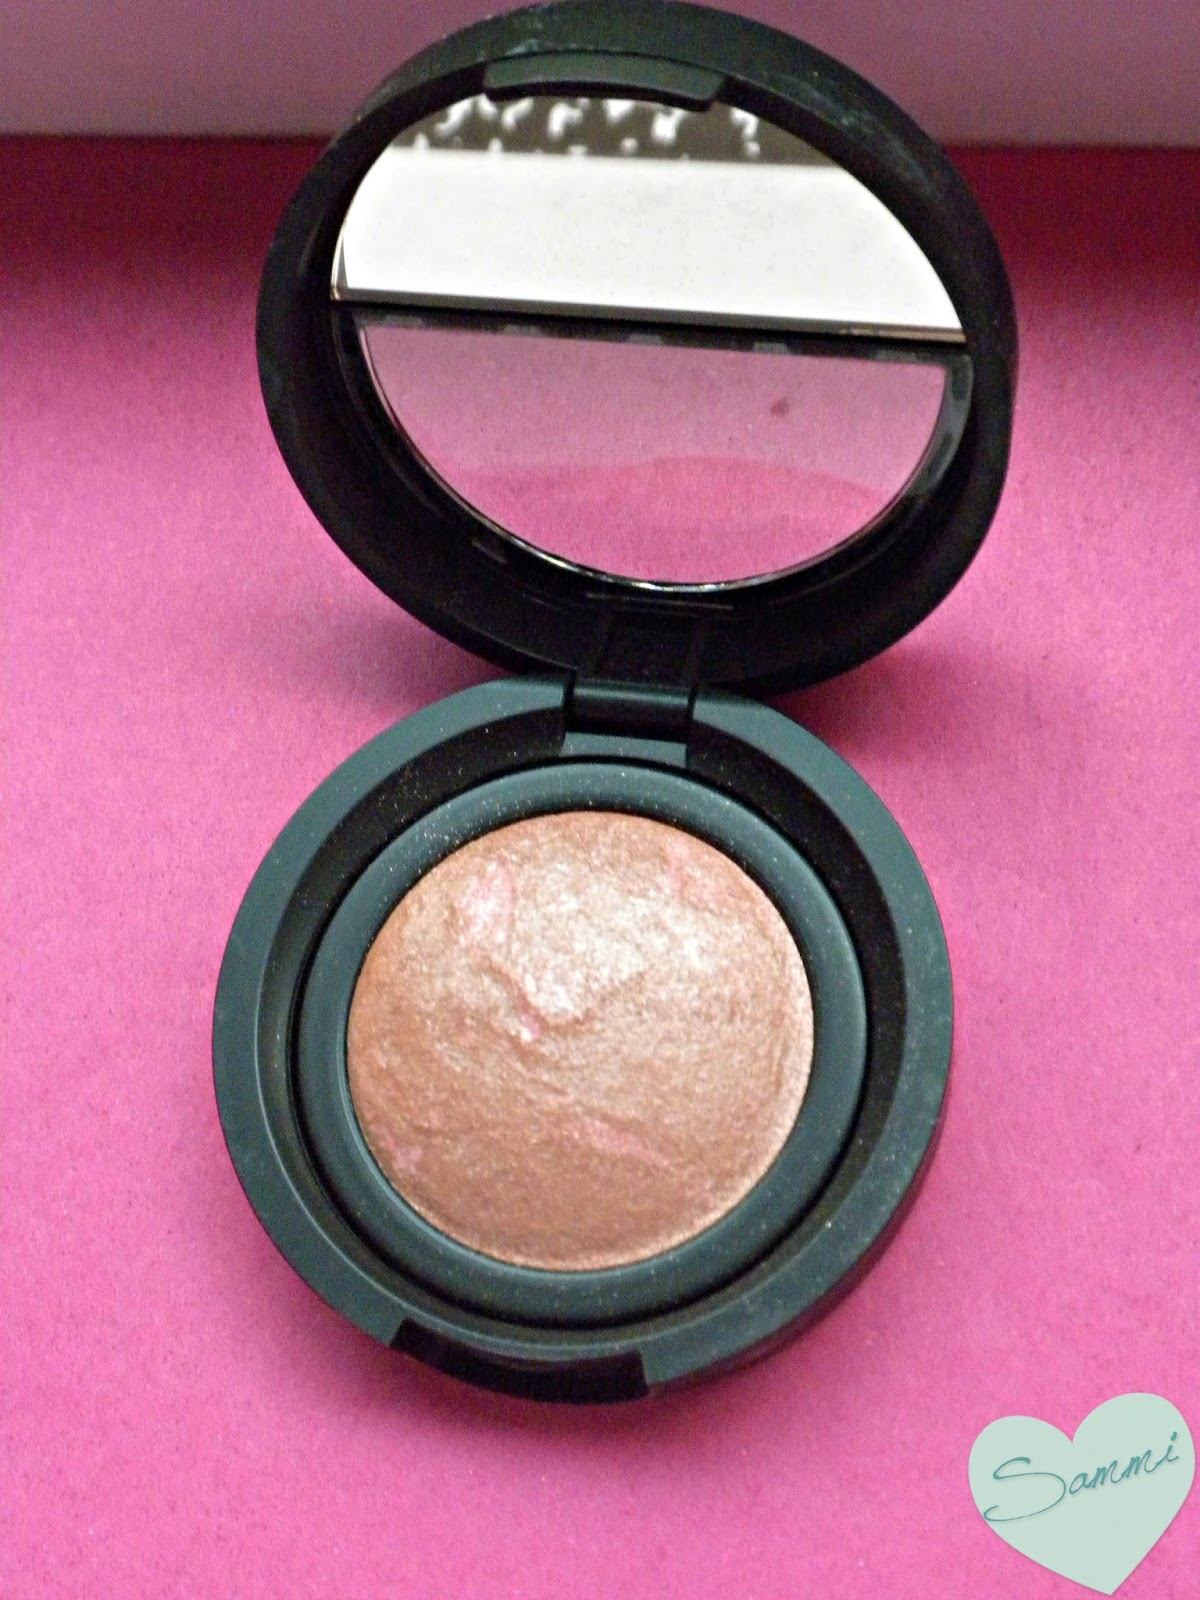 LAURA GELLER Blush 'n Brighten in Pink Grapefruit